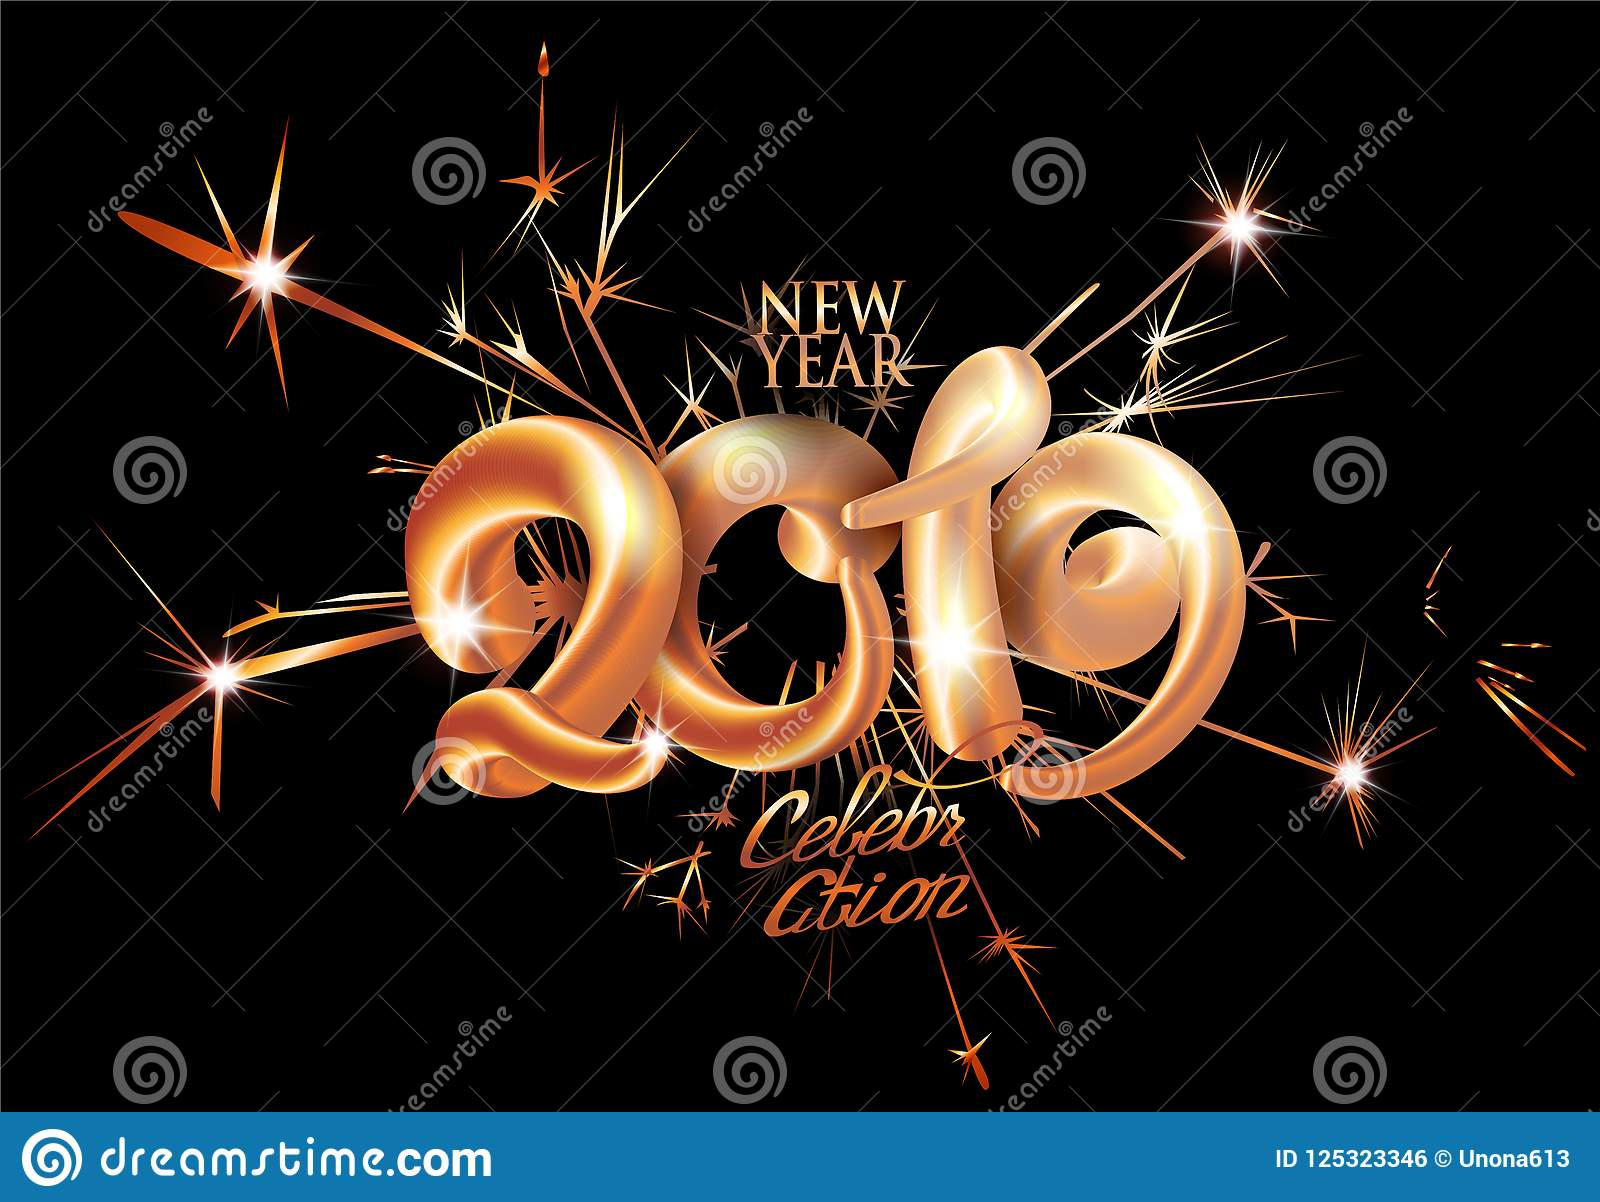 new year 2019 celebration invitation card with fire works and volume numbers